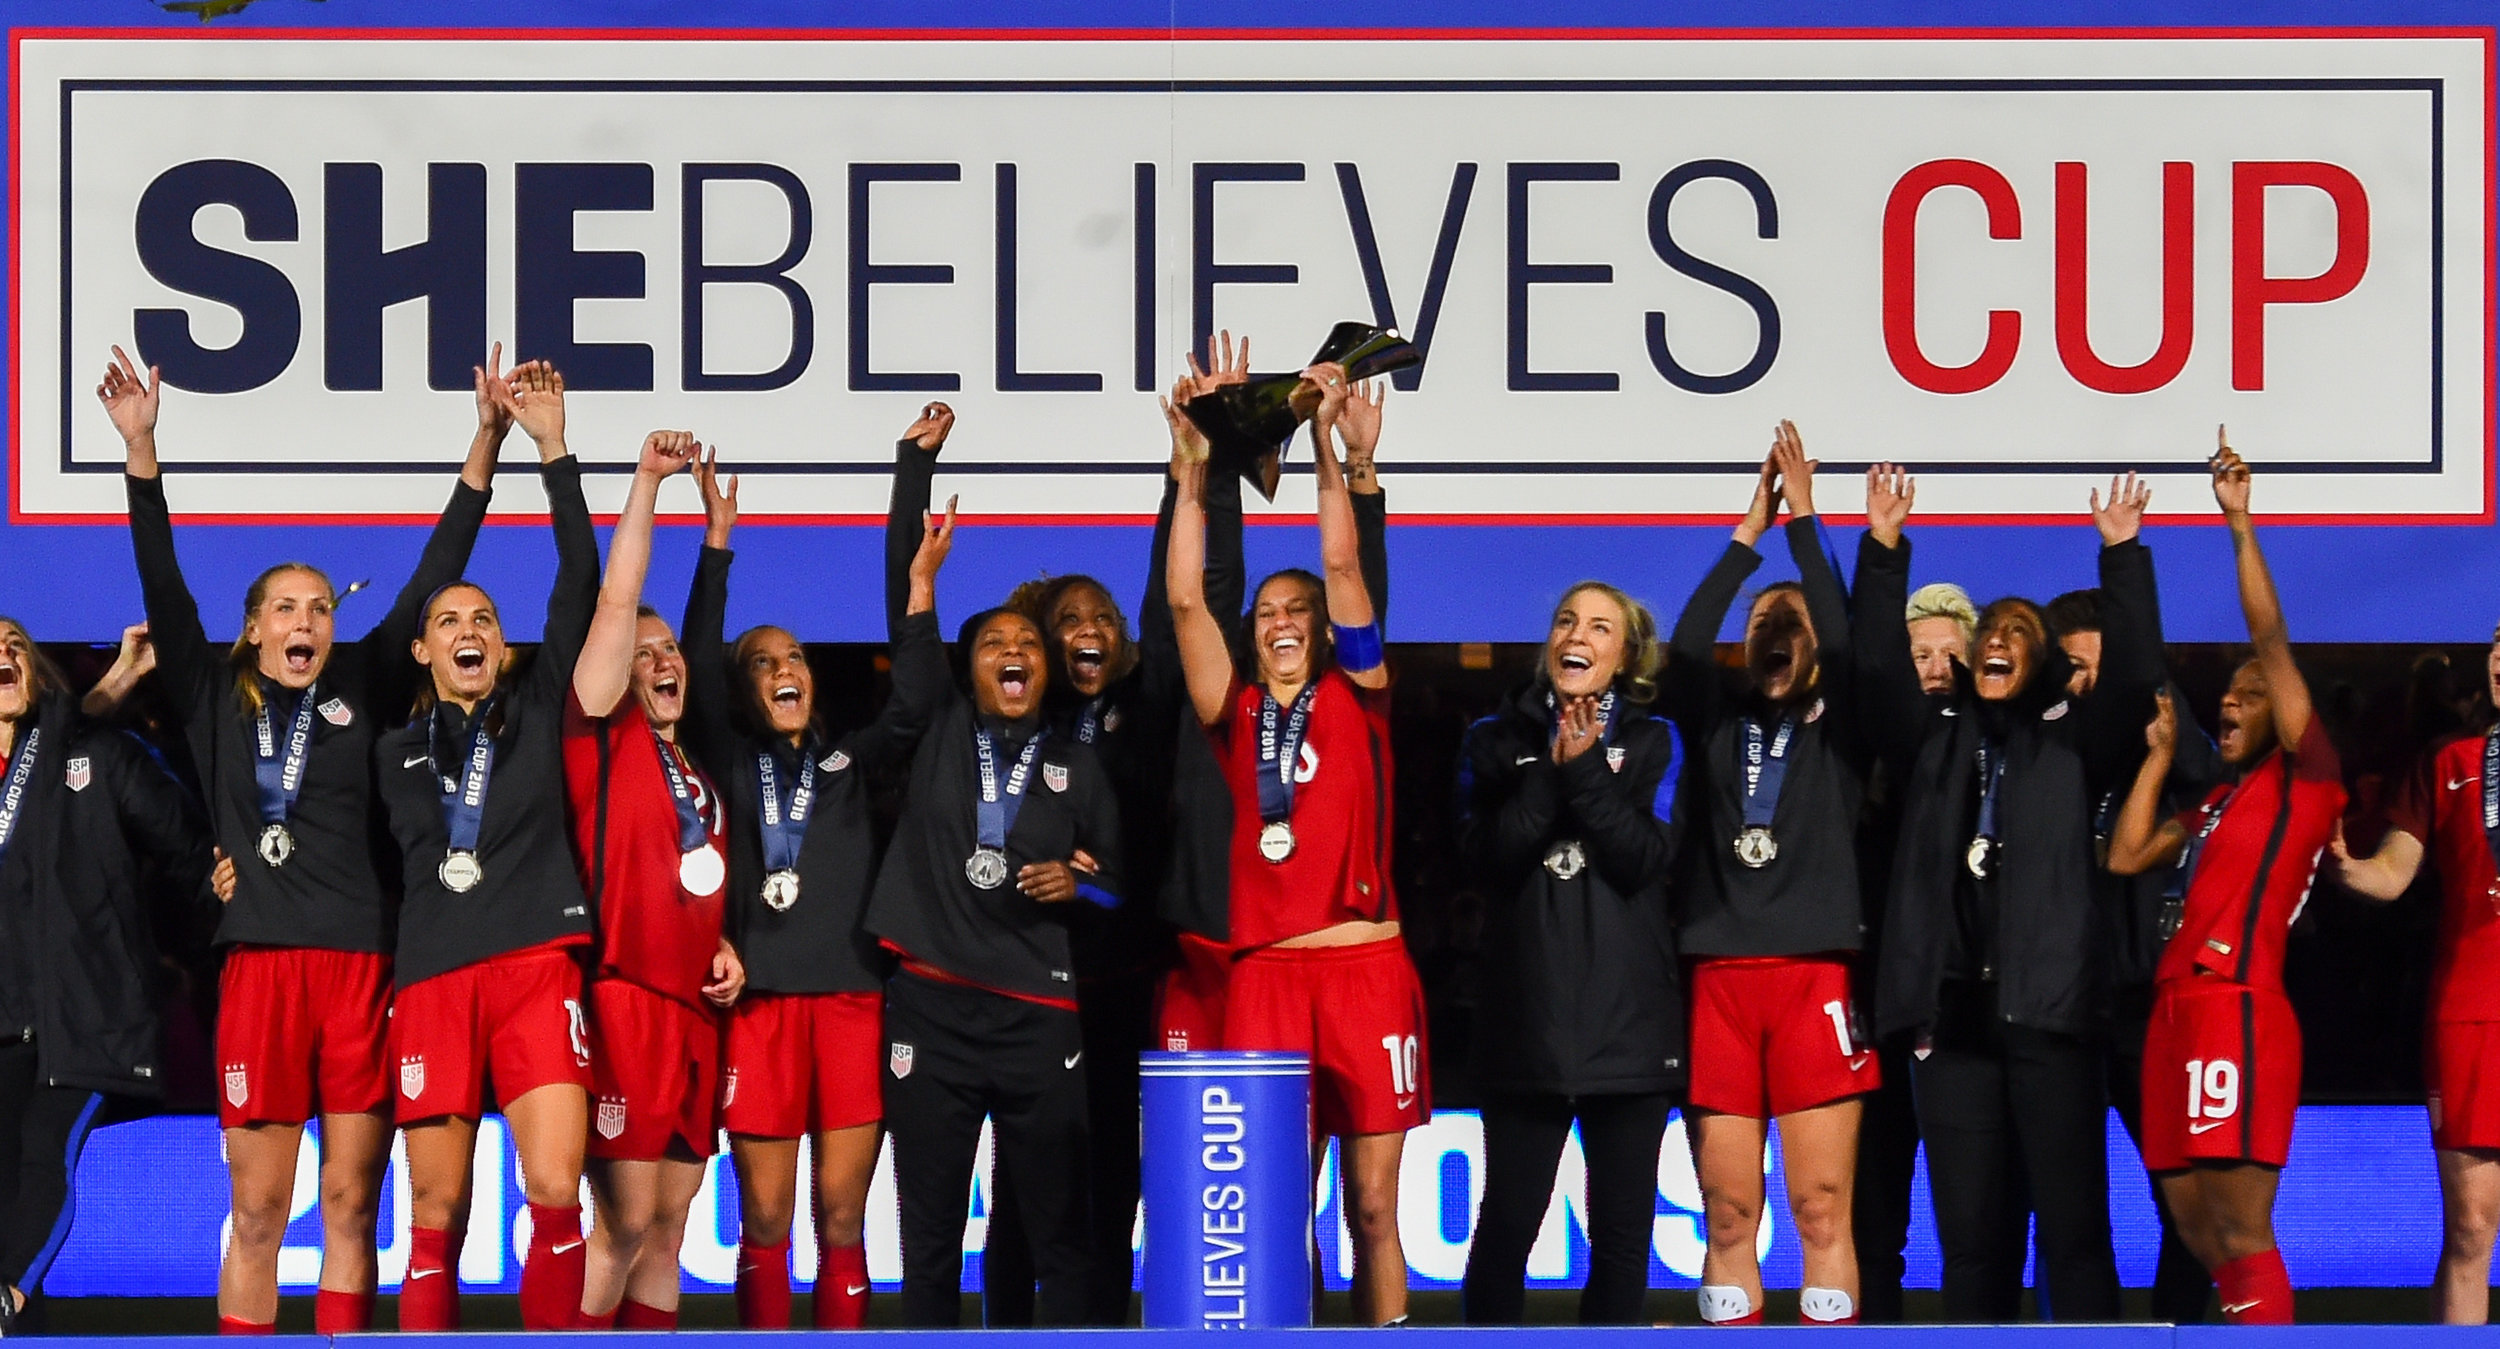 As the U.S. Women's National Team stepped to the podium at Orlando City Stadium to lift its second SheBelieves Cup trophy in three years, U.S. Soccer Development Fund Circle members had exclusive post-game field-level access to watch the trophy presentation up close.   In addition to post-game field-level access during the trophy celebration, Circle members had access to a variety of exclusive benefits, unforgettable behind-the-scenes access and one-of-a-kind service from U.S. Soccer during the 2018 SheBelieves Cup. Learn more about Circle member benefits at  ussoccer.com/circles .